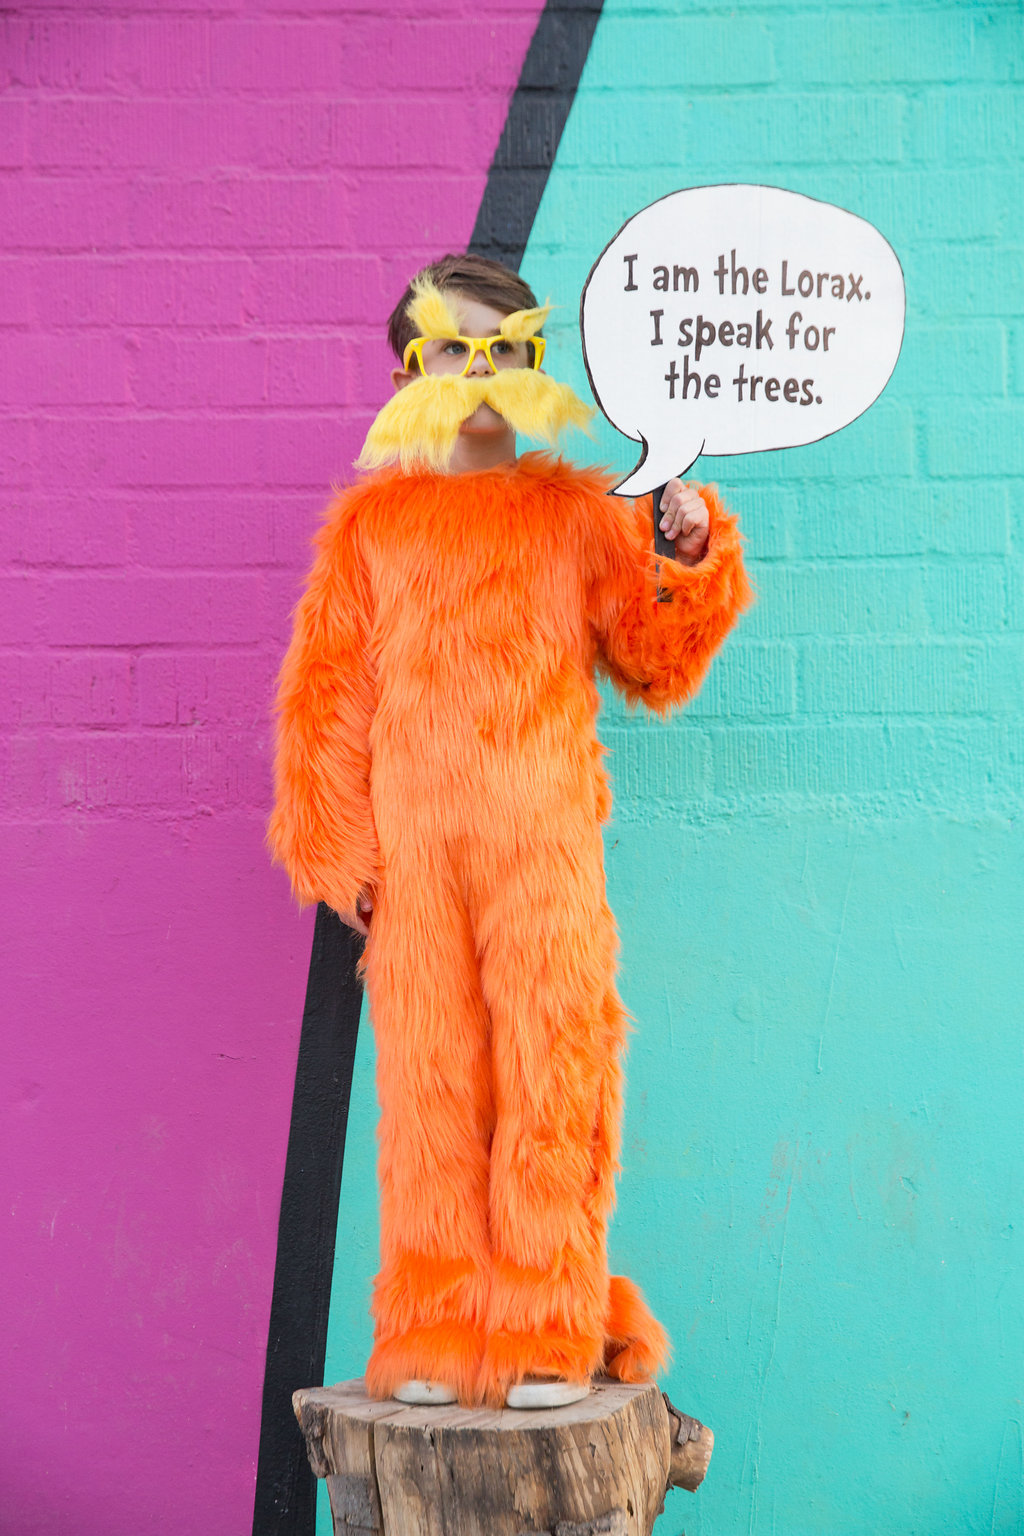 A boy in the lorax costume